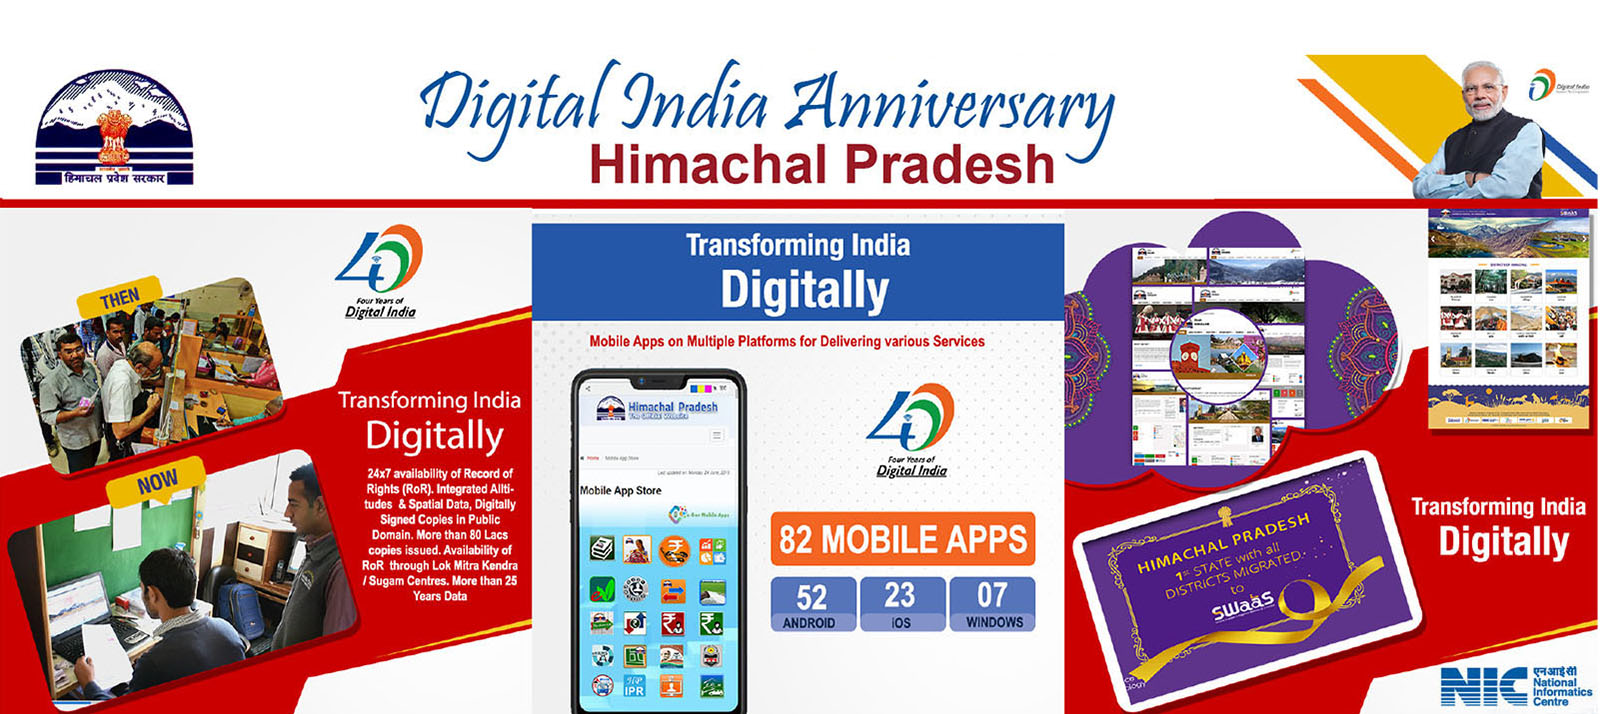 Image of 4th Anniversary of Digital India celebrations at Shimla, Himachal…